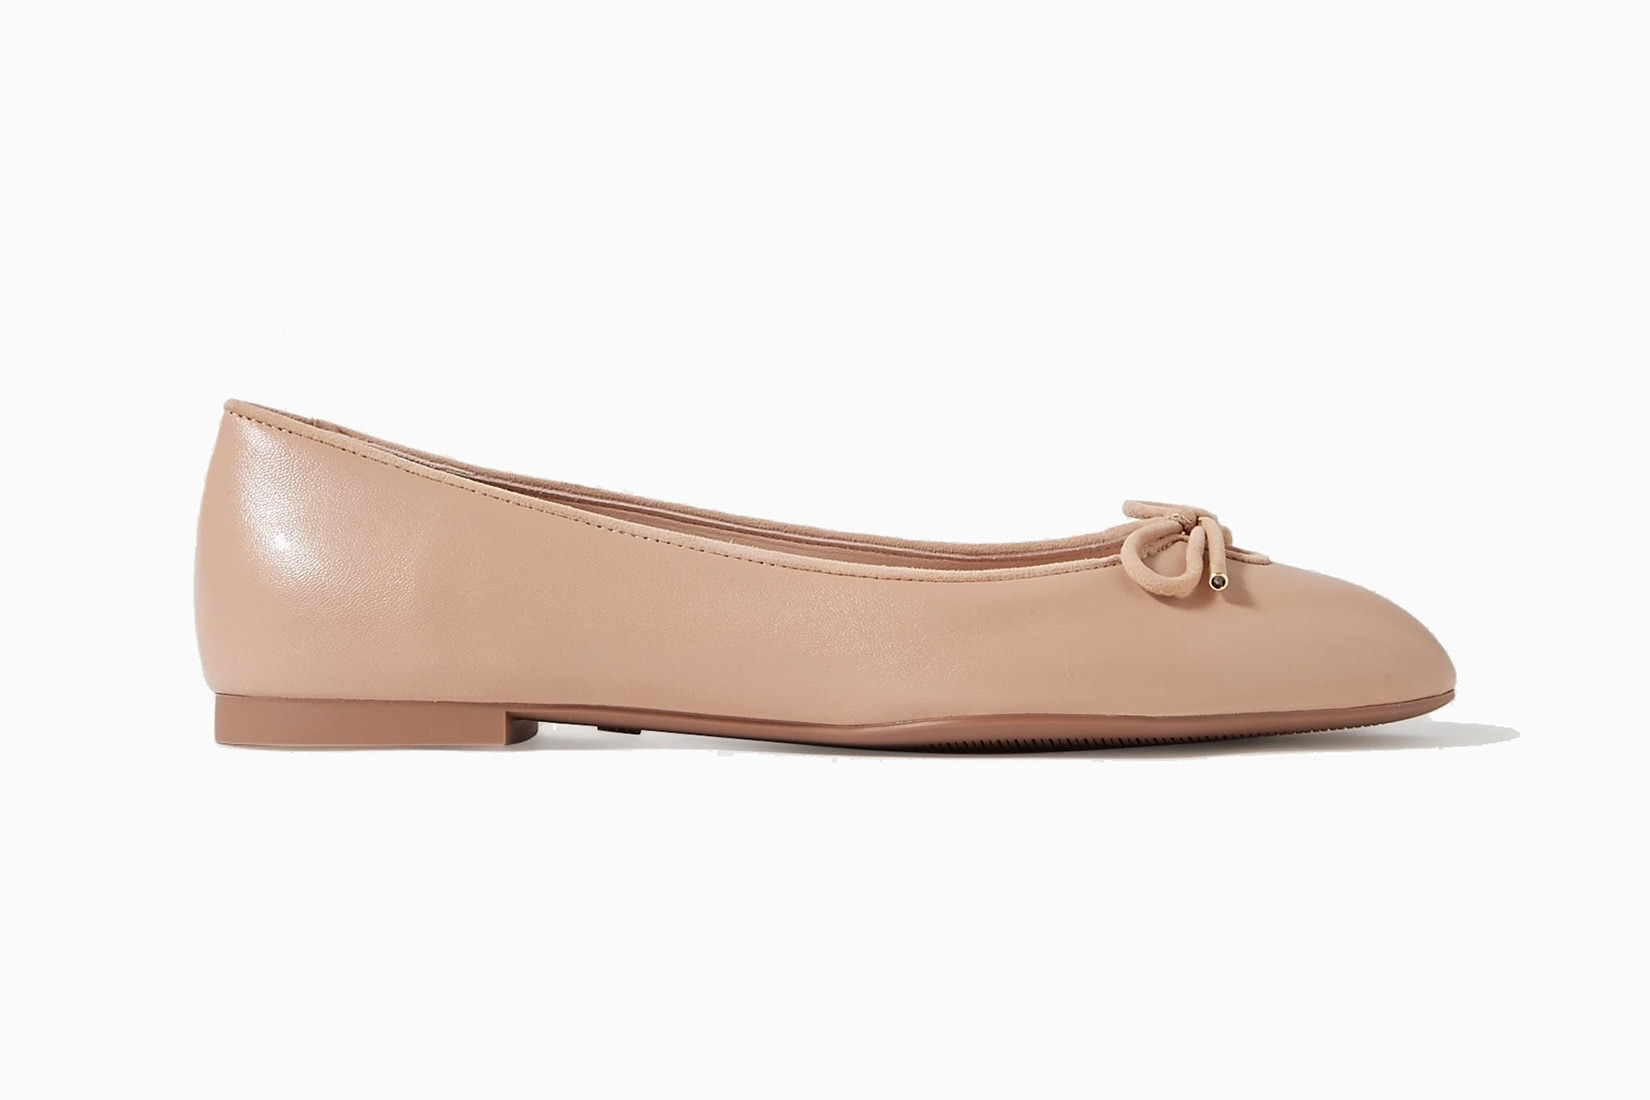 most comfortable flats women high-end stuart weitzman review - Luxe Digital